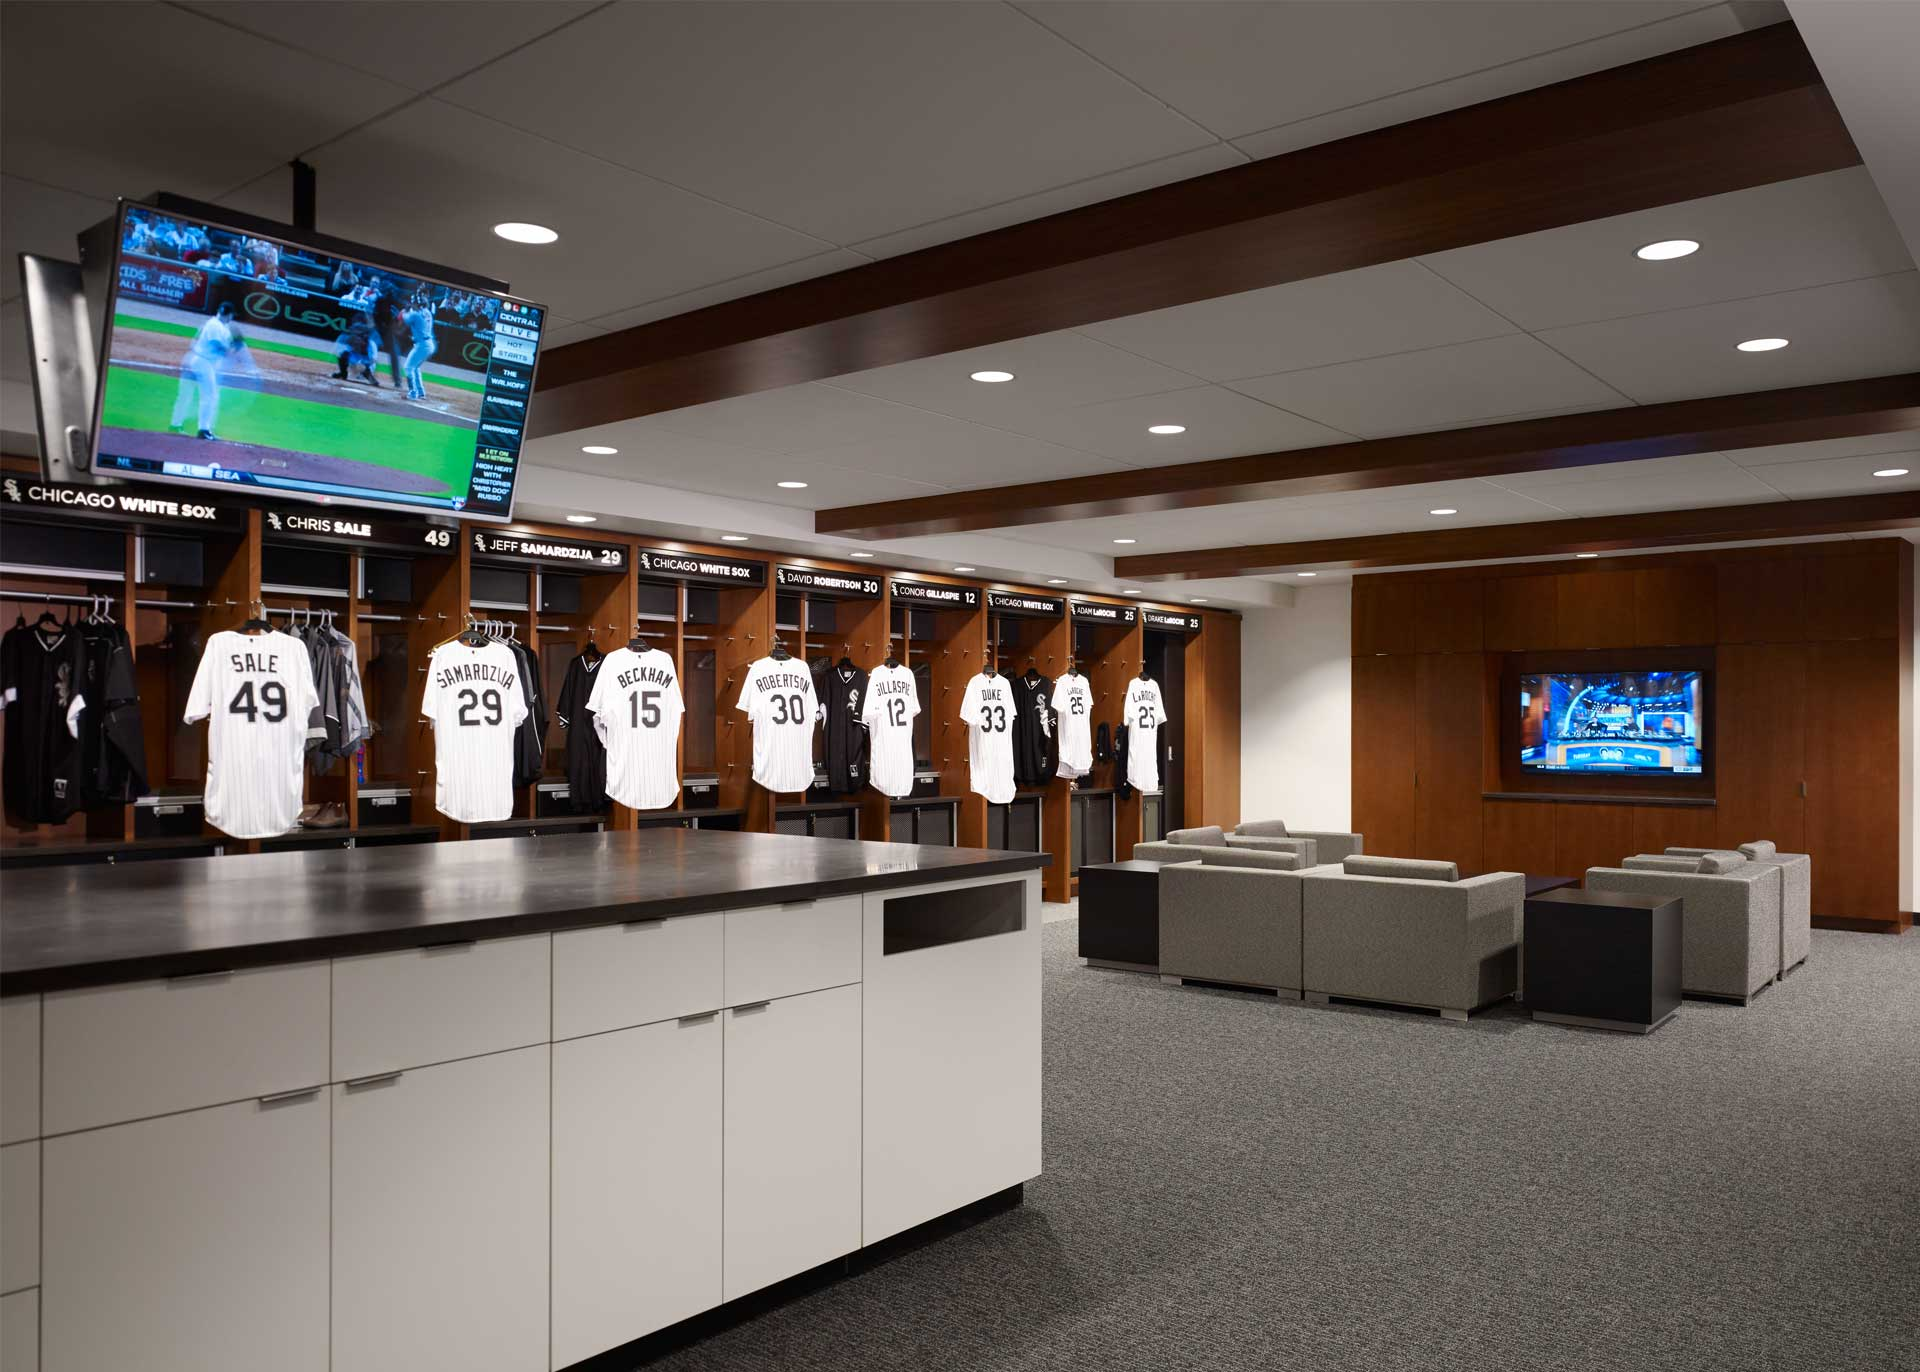 Chicago white sox clubhouse bkl architecture for Interior design consultant chicago